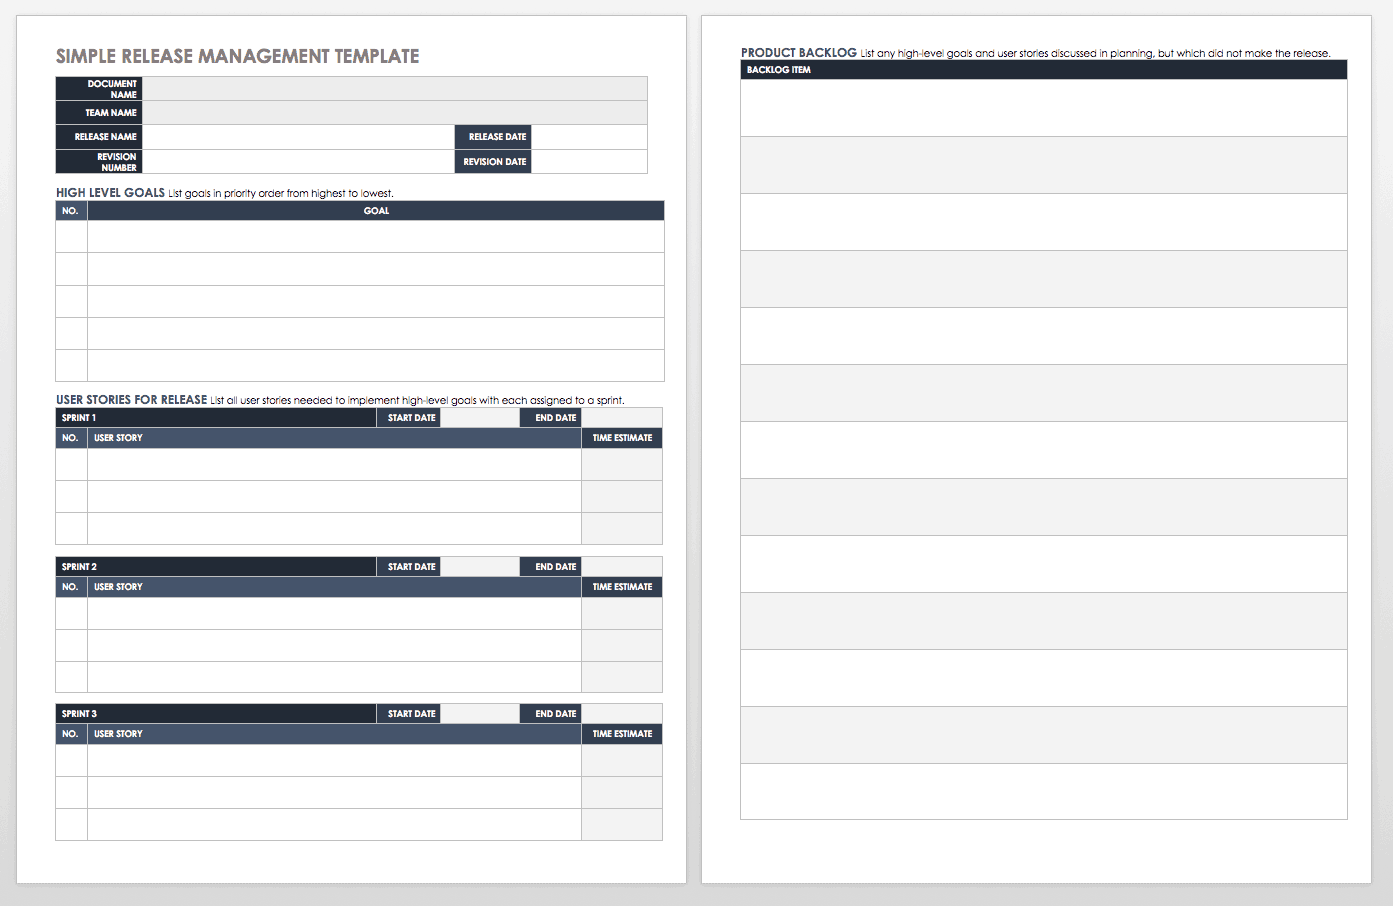 Simple Release Management Template